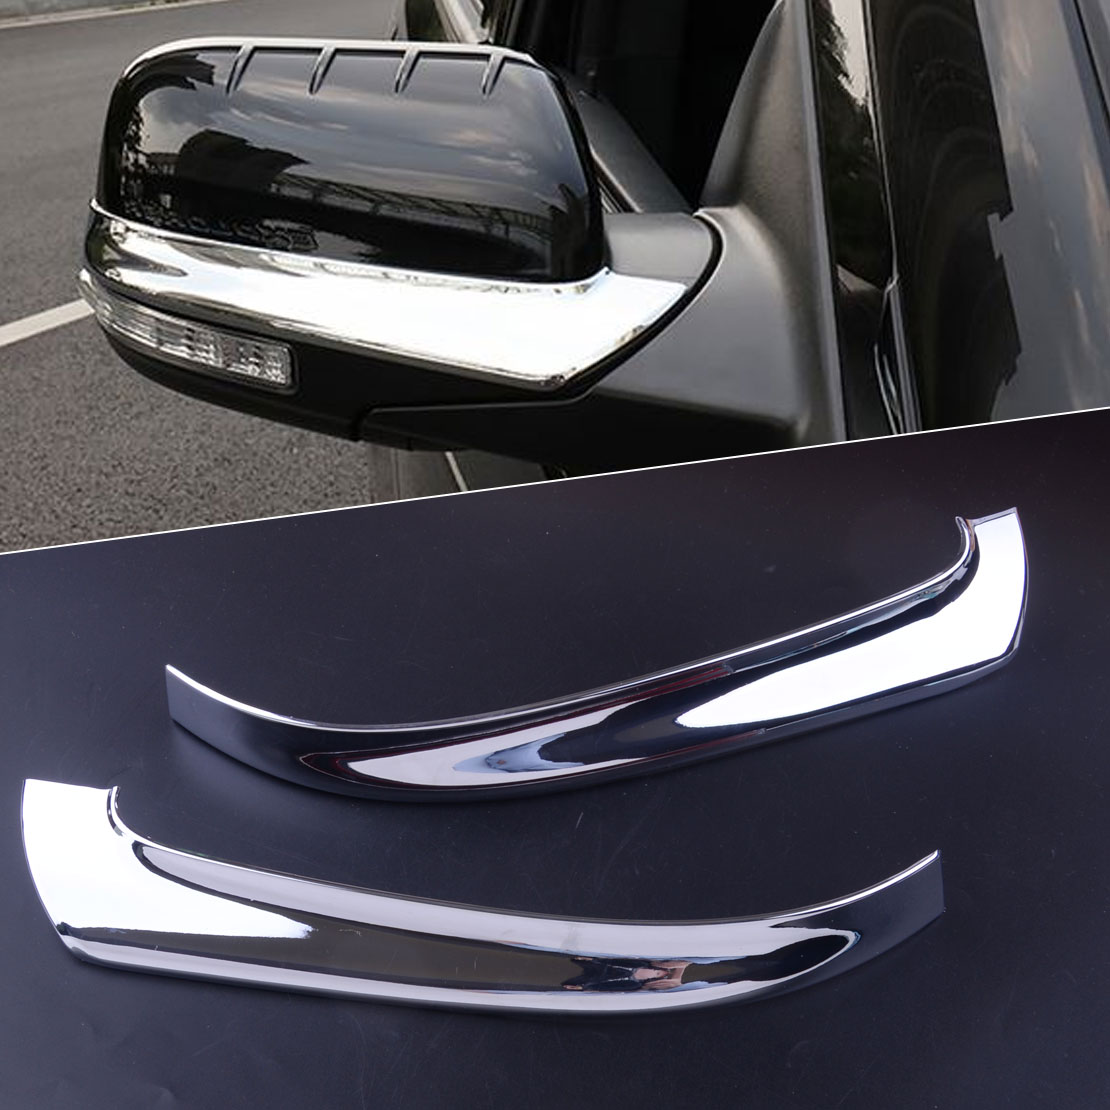 CITALL 2pcs Silver ABS Left Right Chrome Plated Rearview Side <font><b>Mirror</b></font> Strip Trim Cover Fit For <font><b>Ford</b></font> <font><b>Explorer</b></font> 2016 2017 2018 2019 image